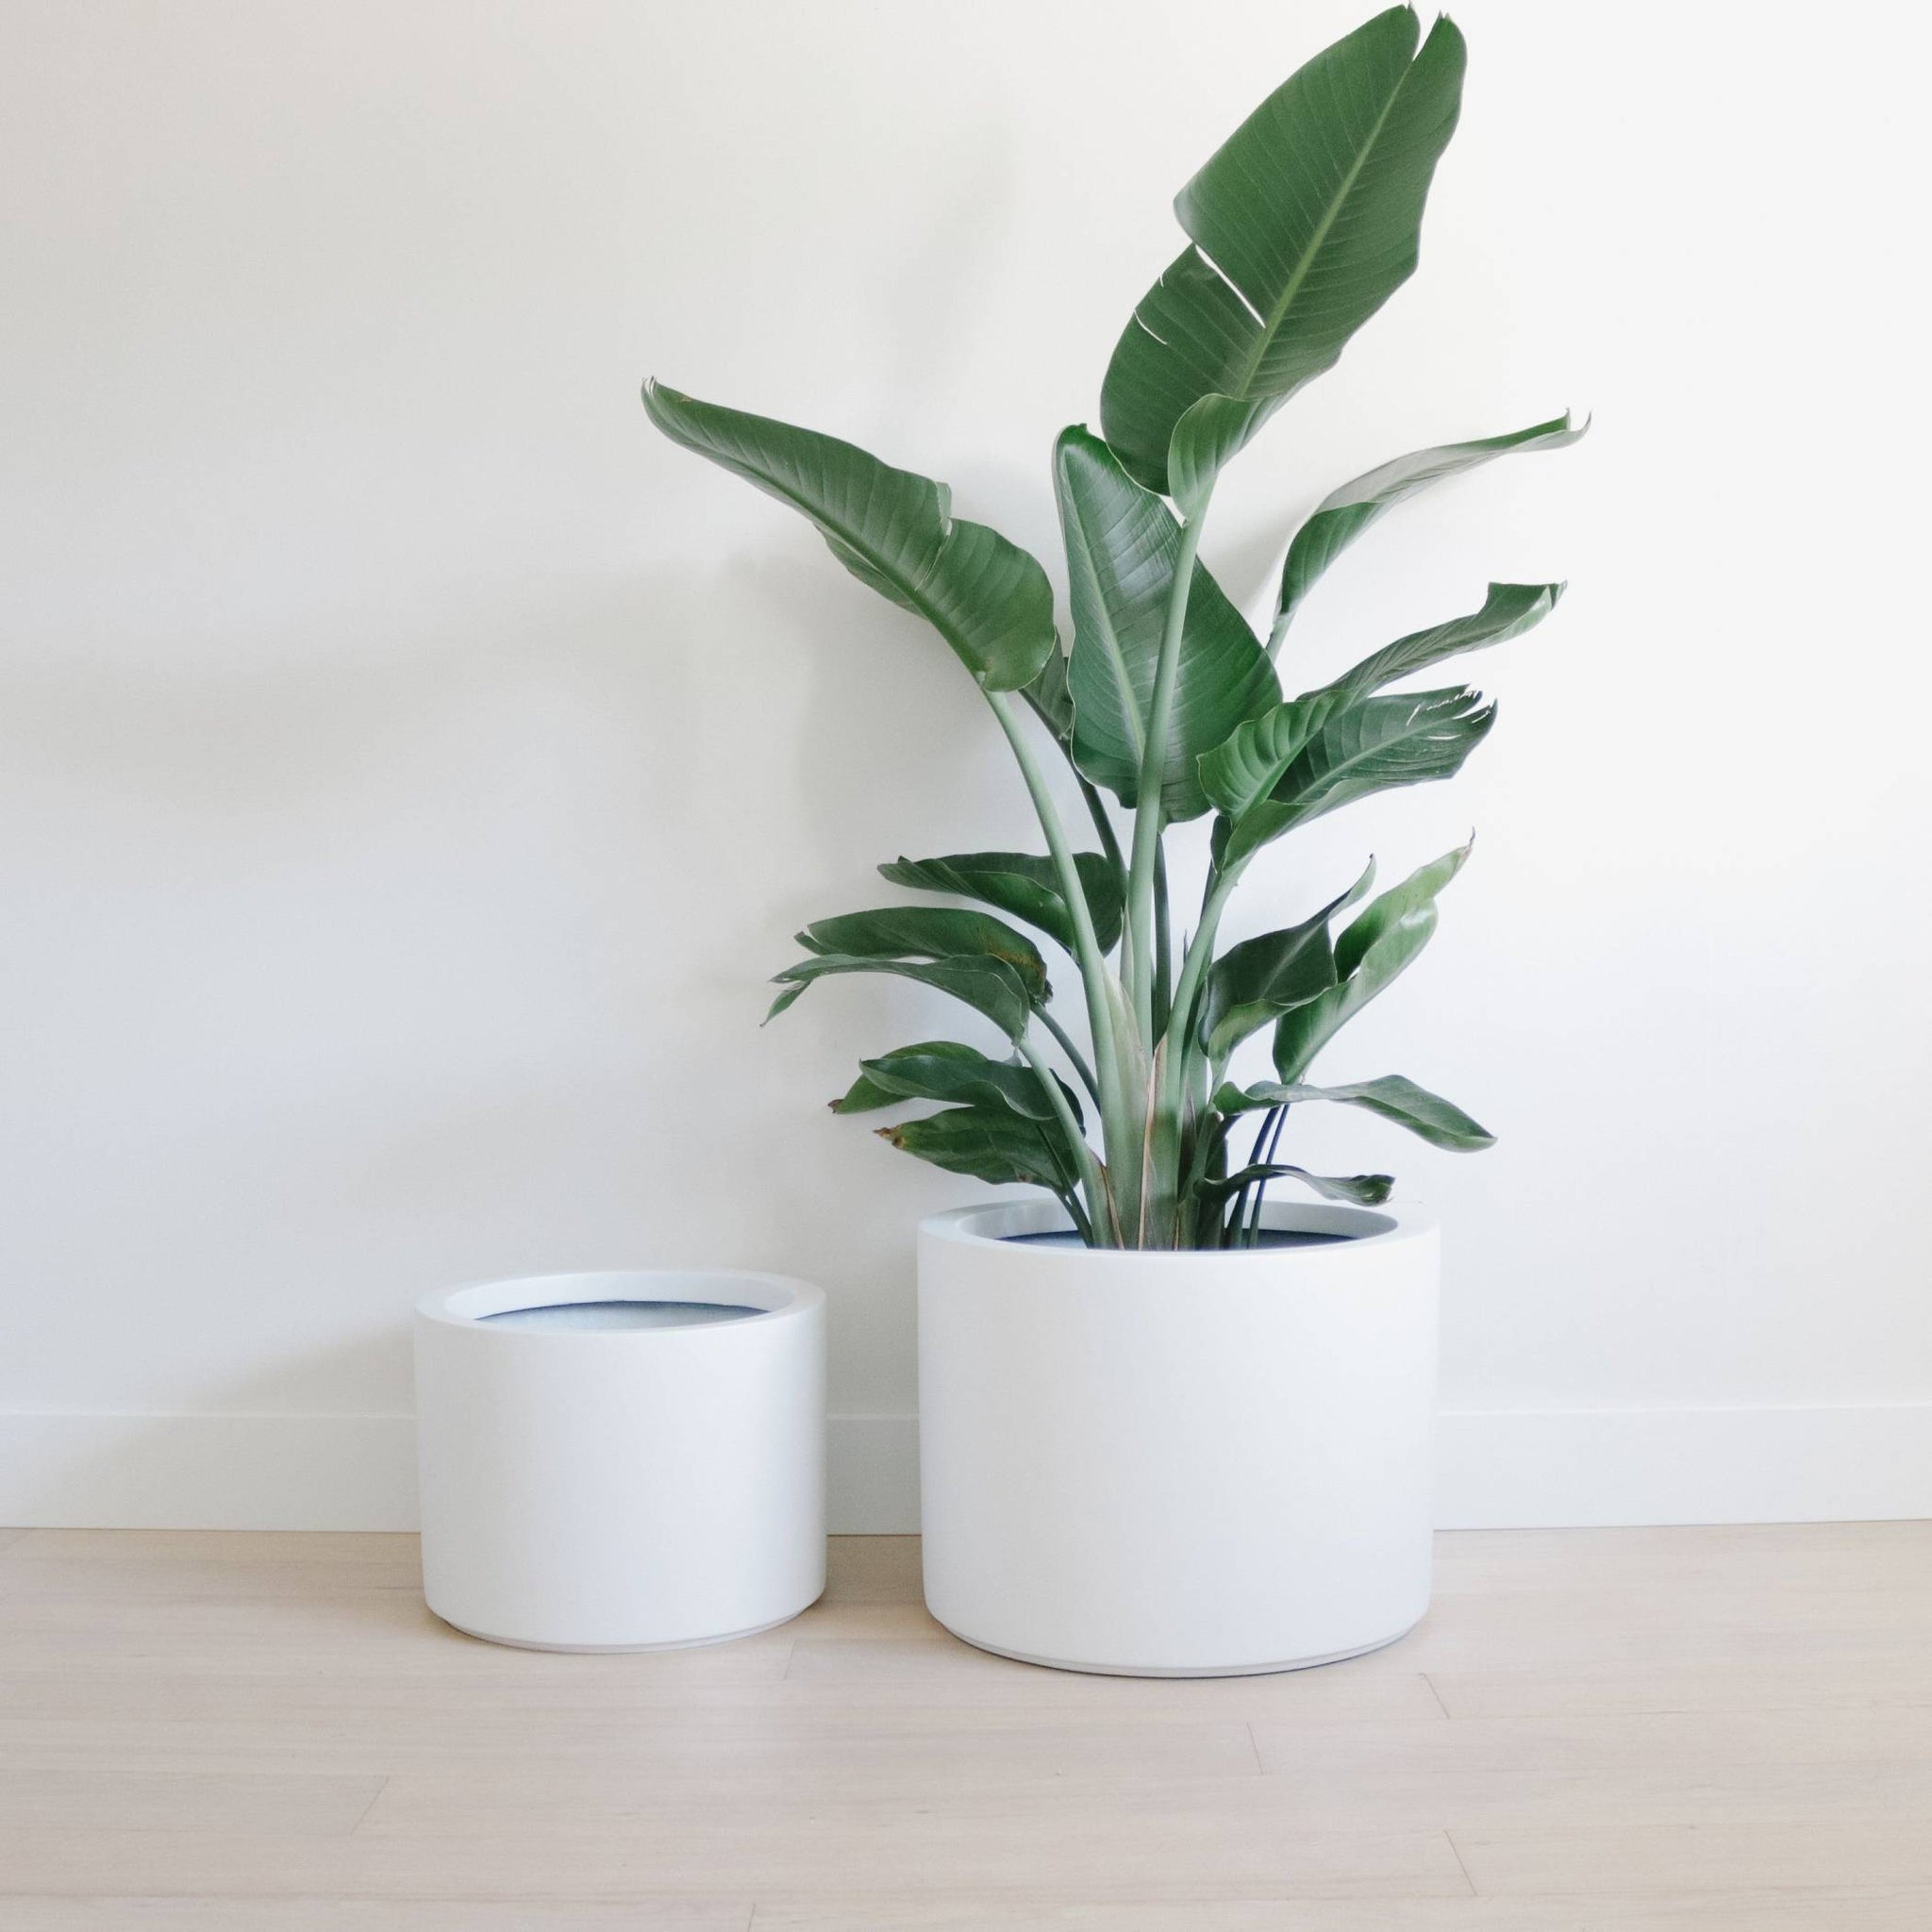 Modern Matte Planter - Low Cylinder Pot Planters Hudson + Oak MED 14Lx14Wx10.5H inches Matte White Indoor (no drainage holes)